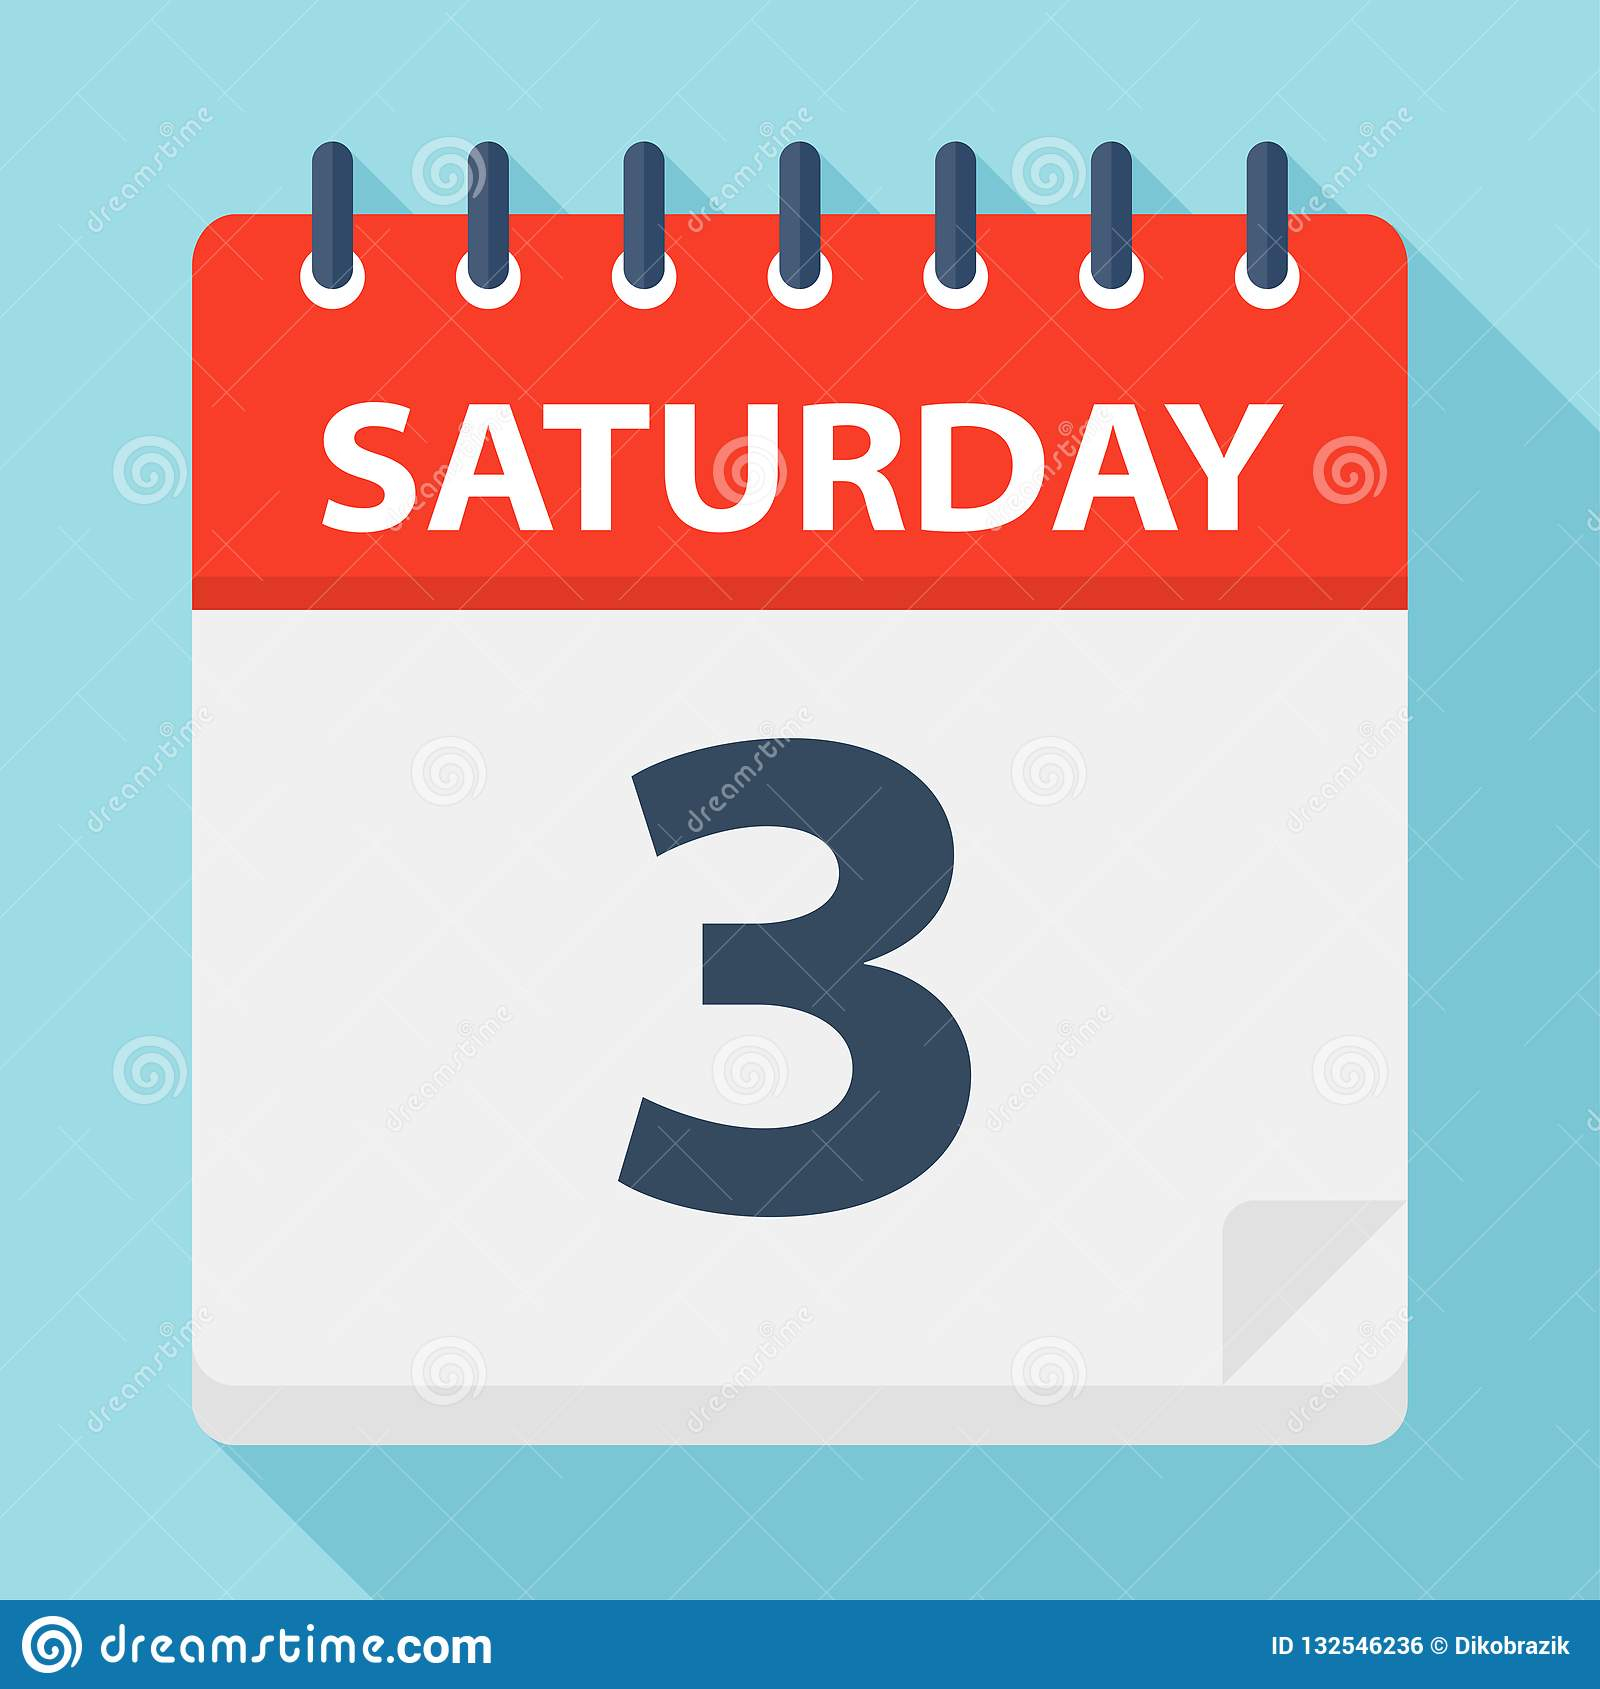 Saturday 3 - Calendar Icon. Vector Illustration Of Week Day